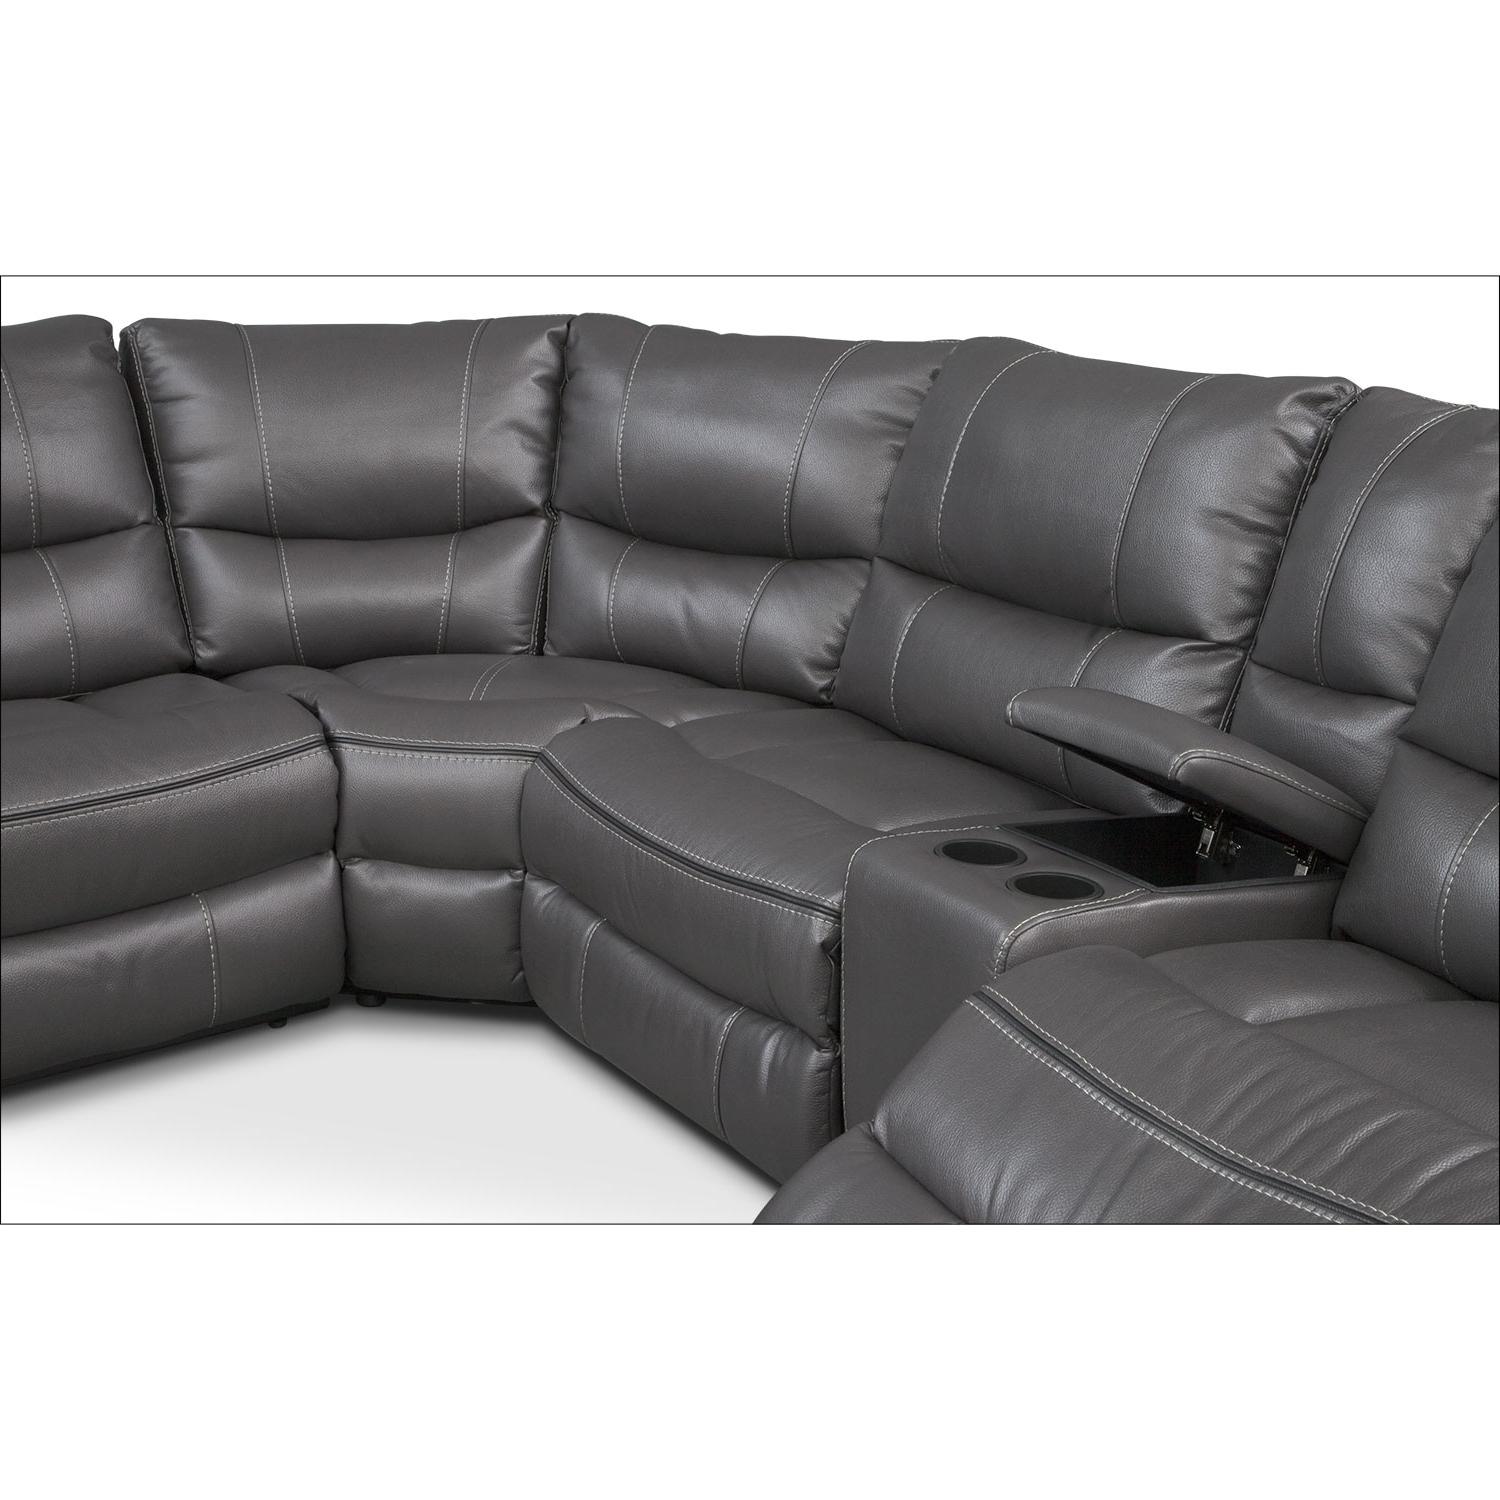 Explore Gallery of Orlando Sectional Sofas (Showing 5 of 20 ...